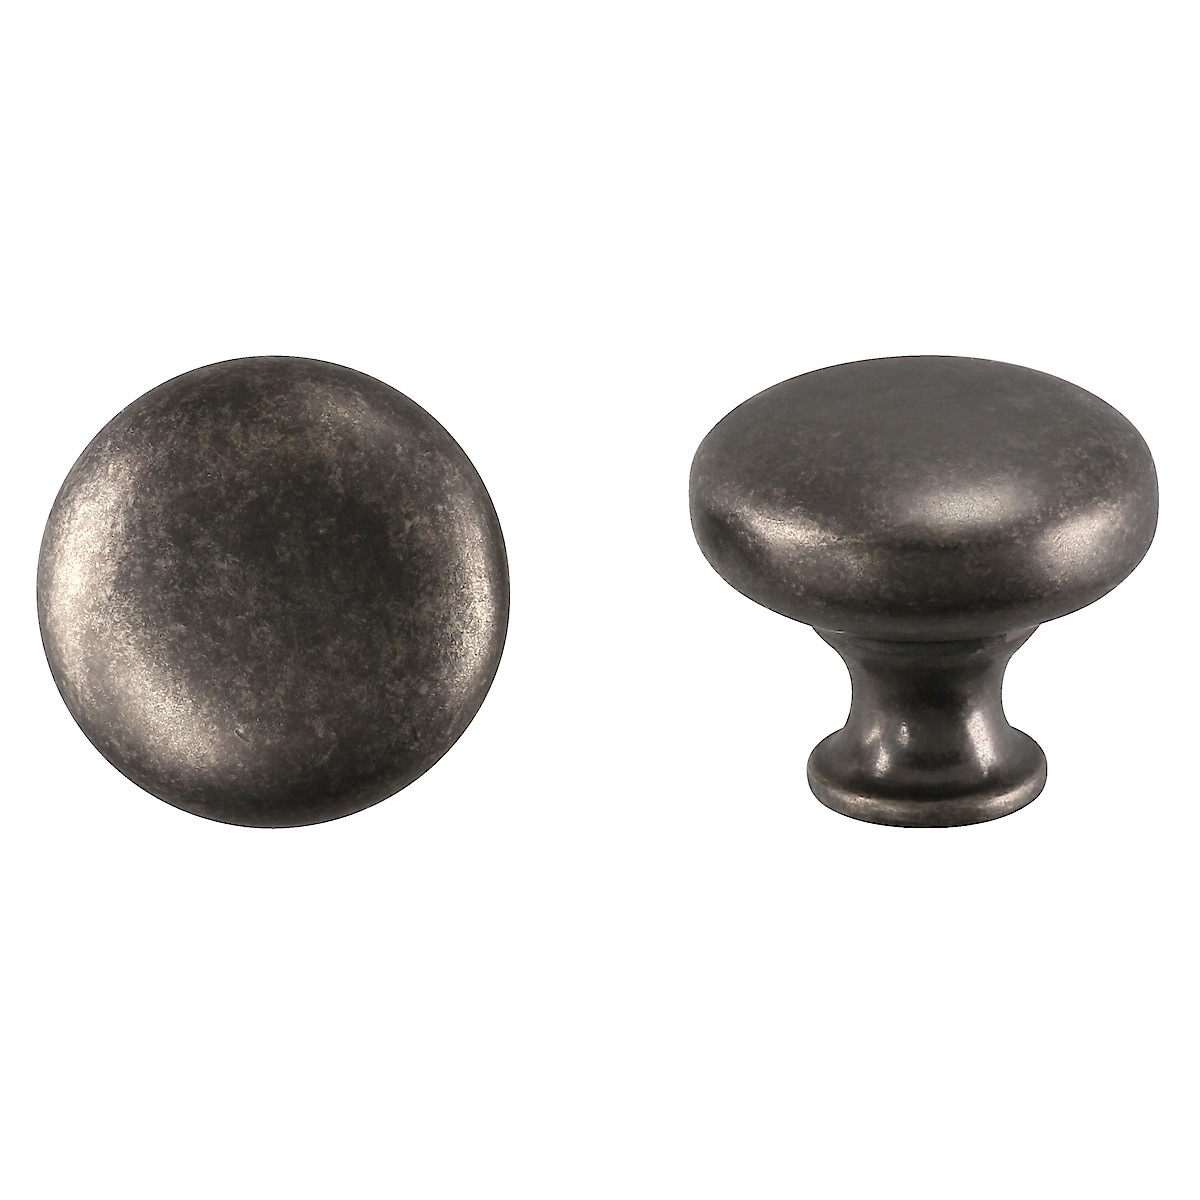 Antique Iron Round Knobs